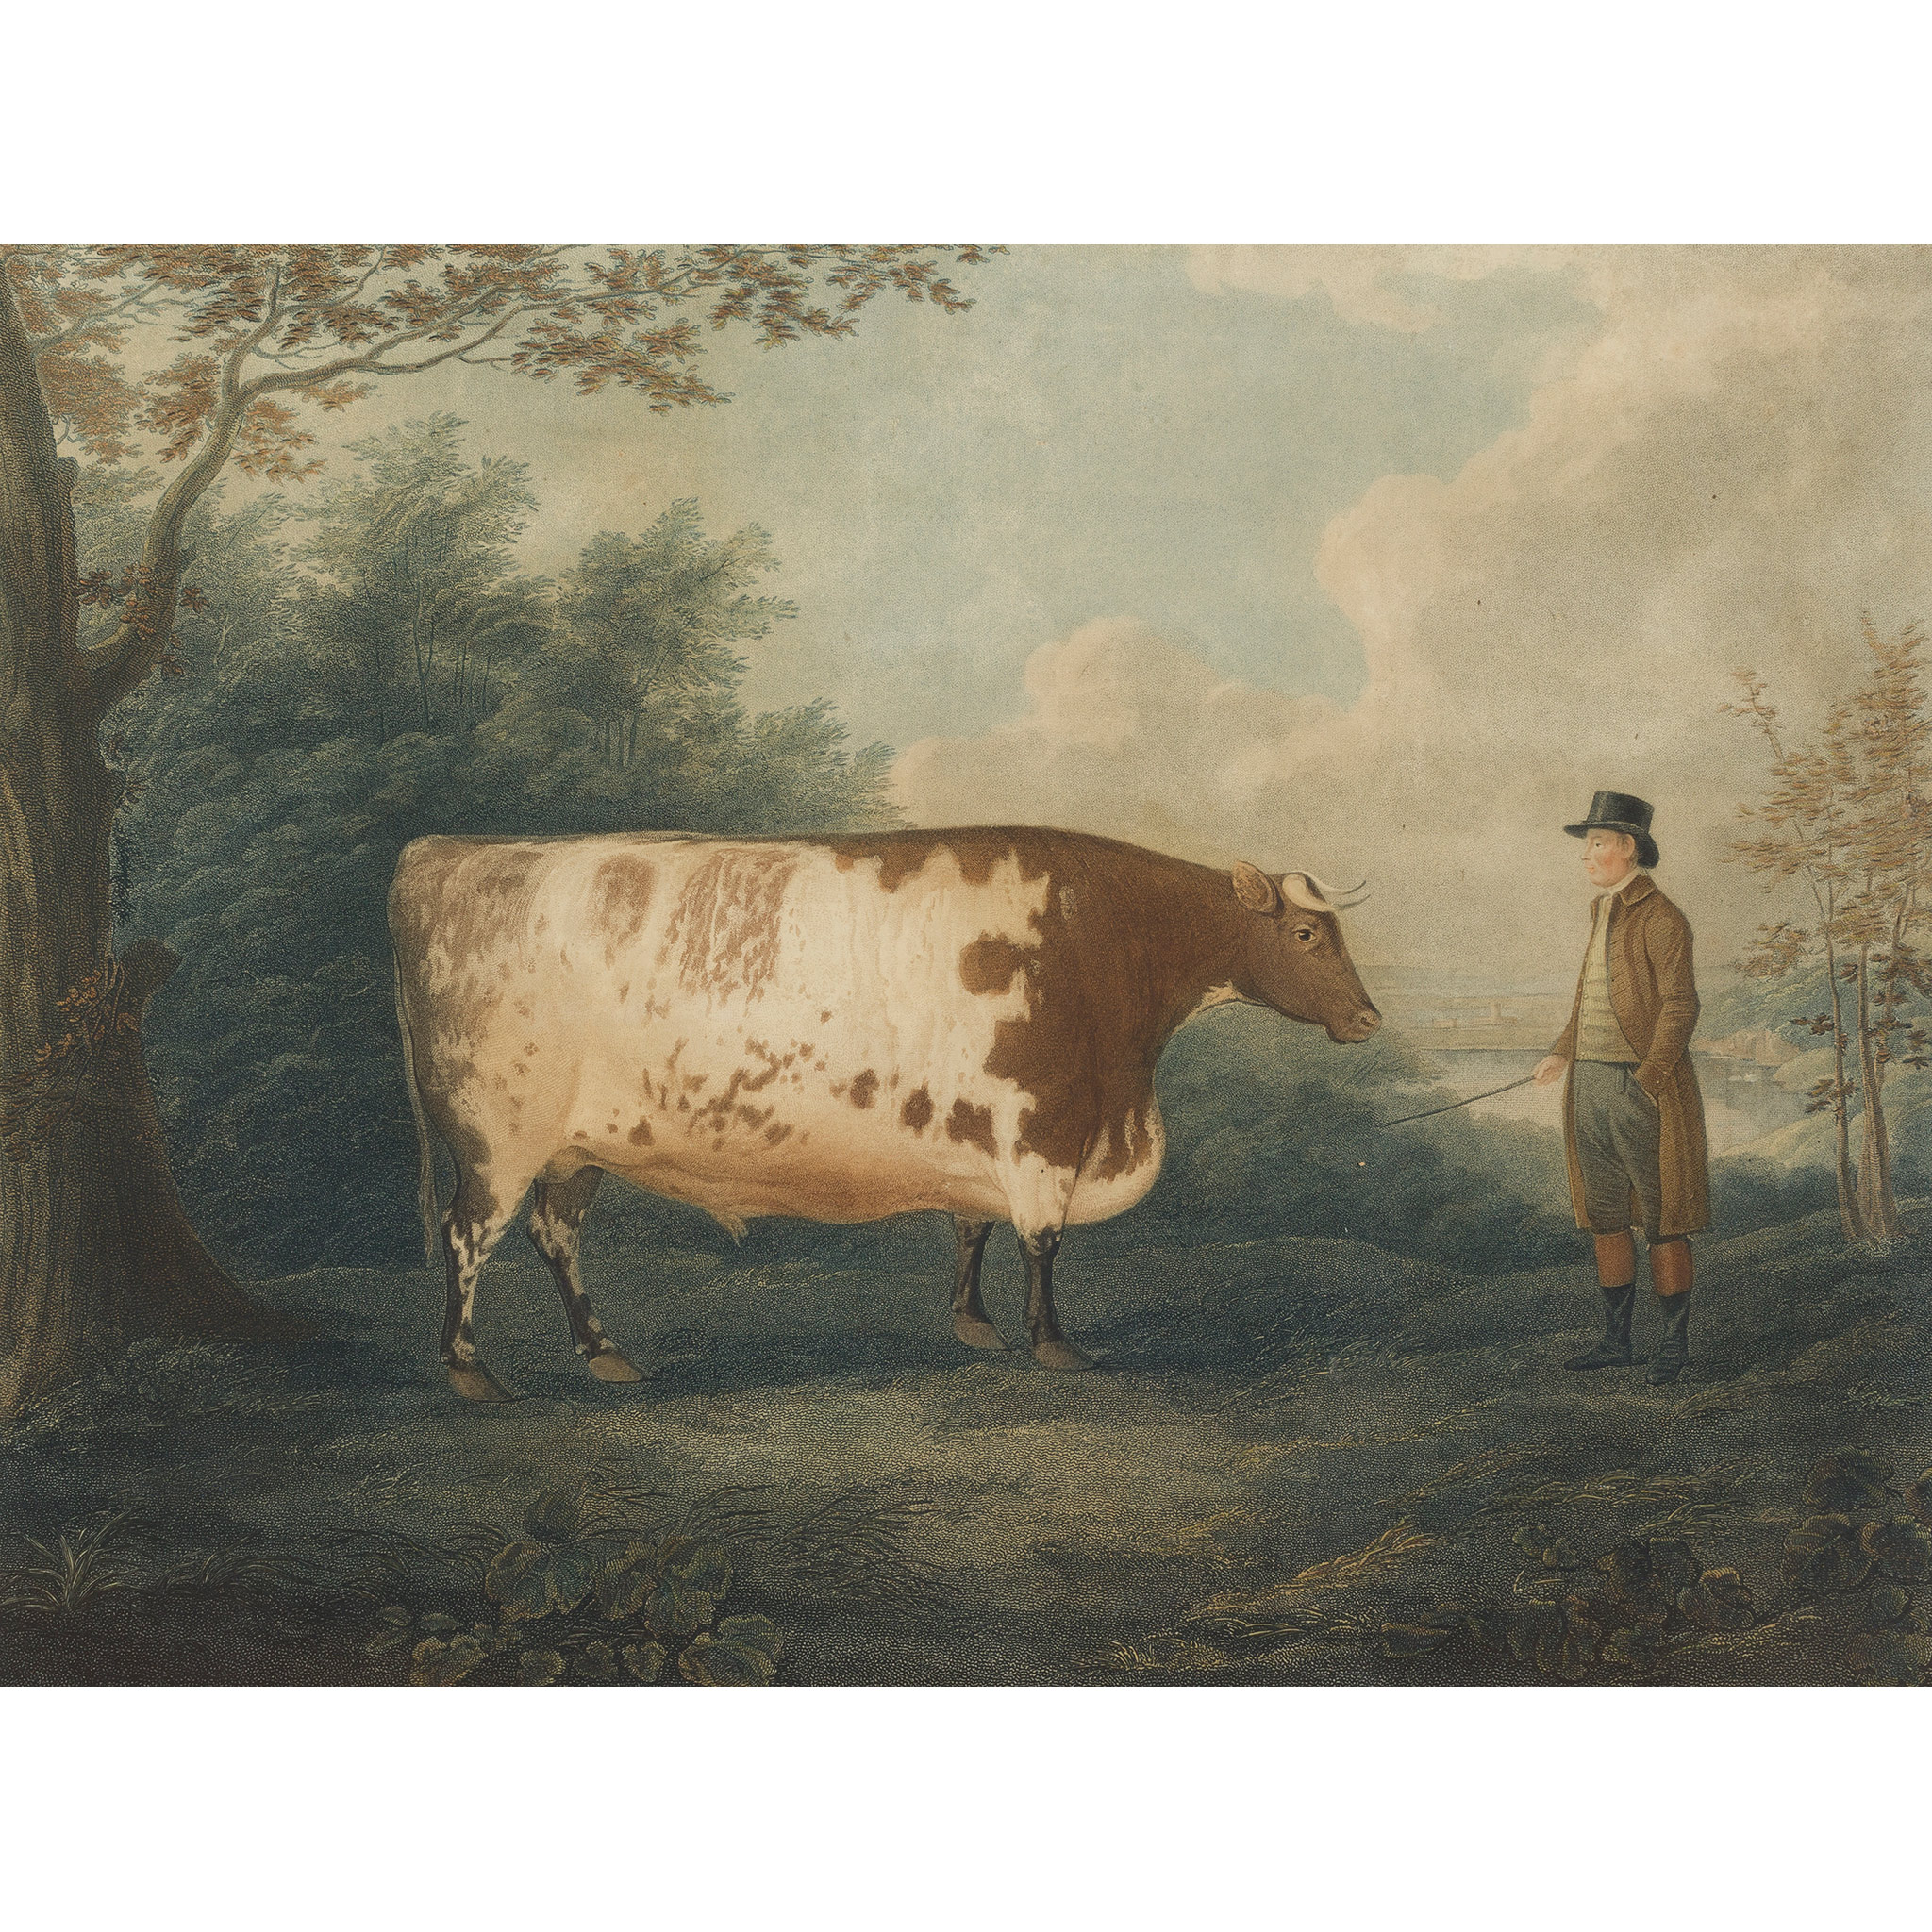 JOHN BOULTBEE AFTER THE DURHAM OX - Image 2 of 2